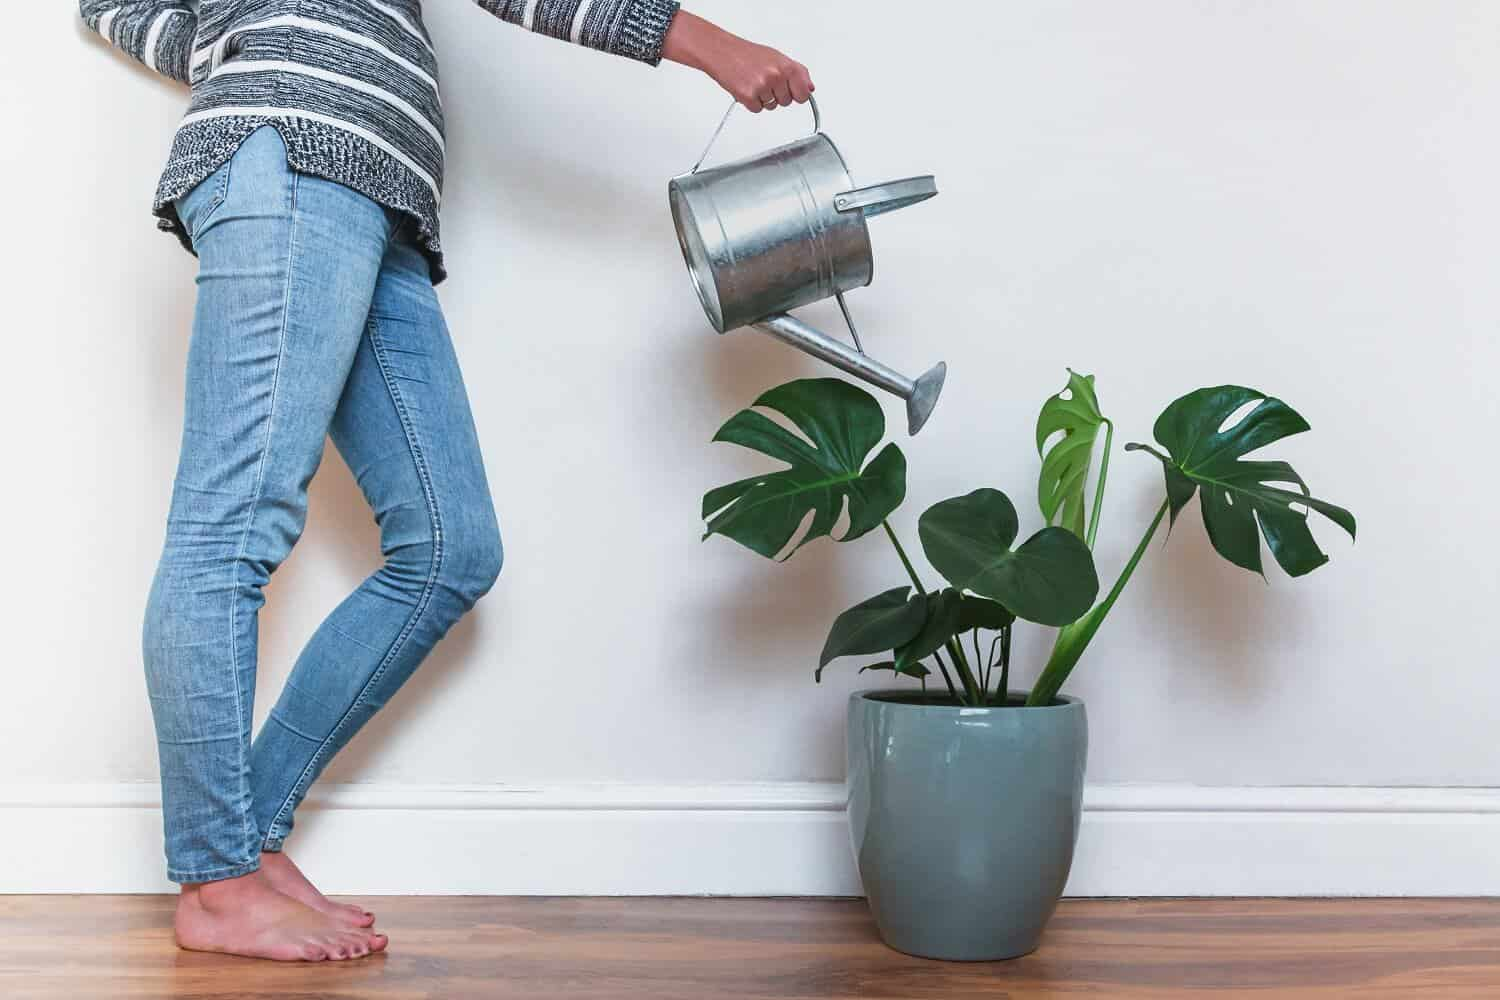 7 Easy Steps for Watering Monstera Plants in Pots